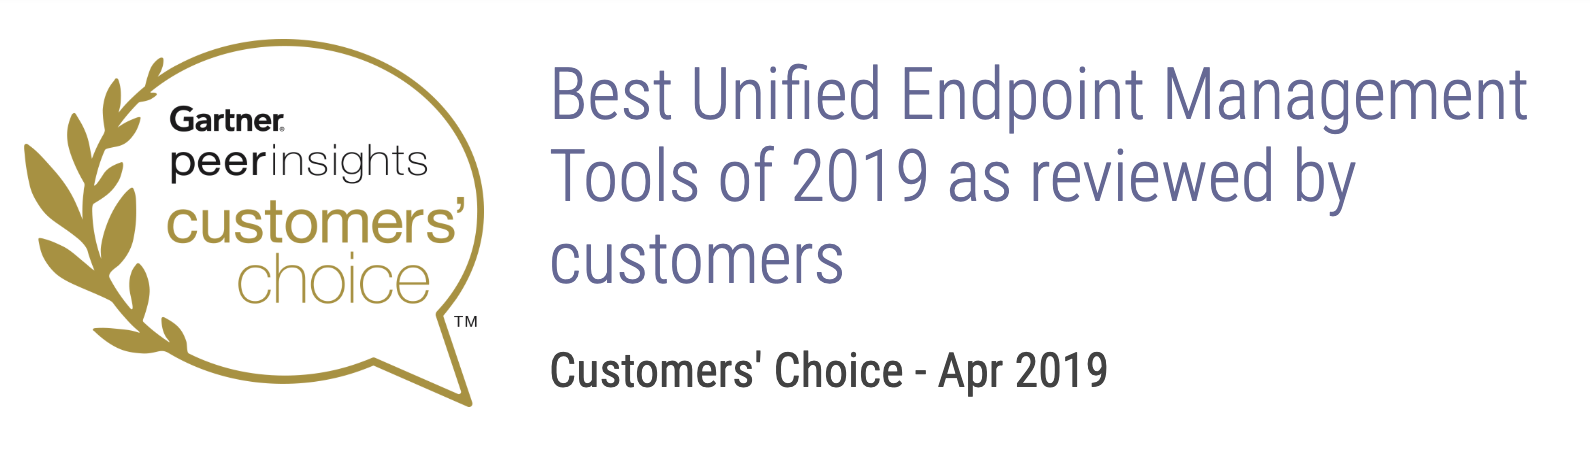 Best Unified Endpoint Management Tools of 2019 as reviewed by customers | Customers' Choice - Apr 2019